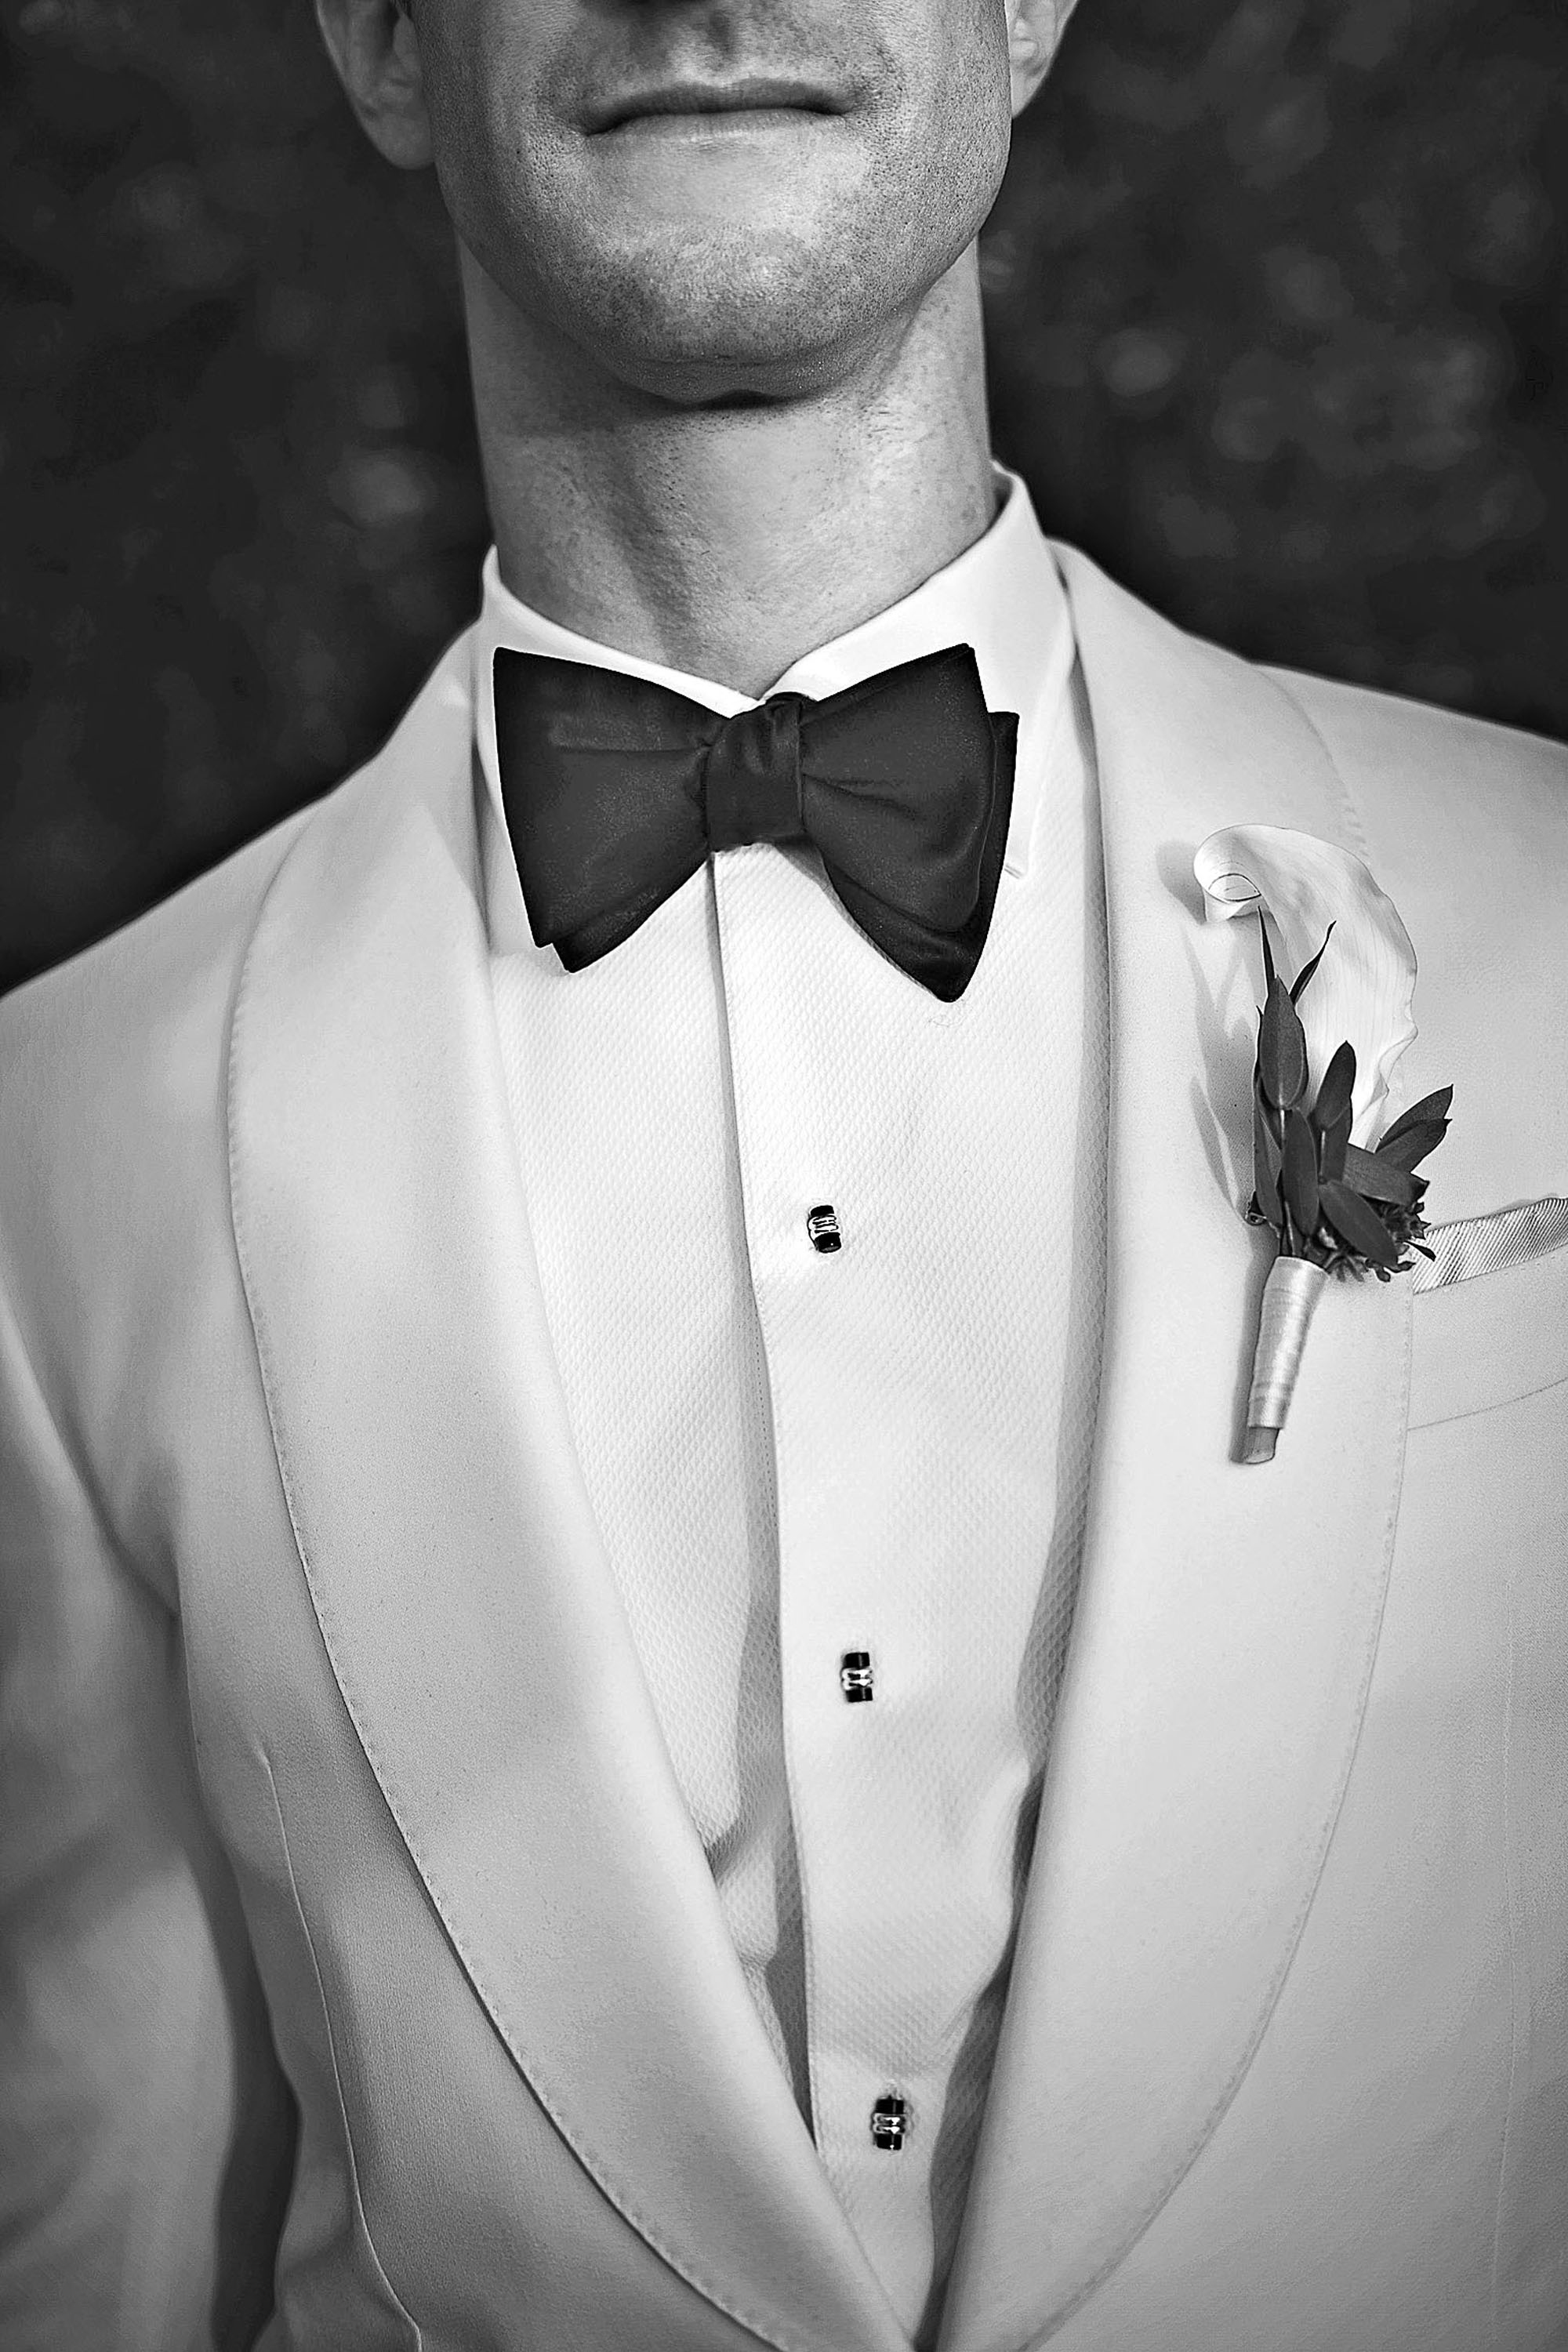 A Celebrity Stylist Shares His Tips for Being the Best-Dressed Groom